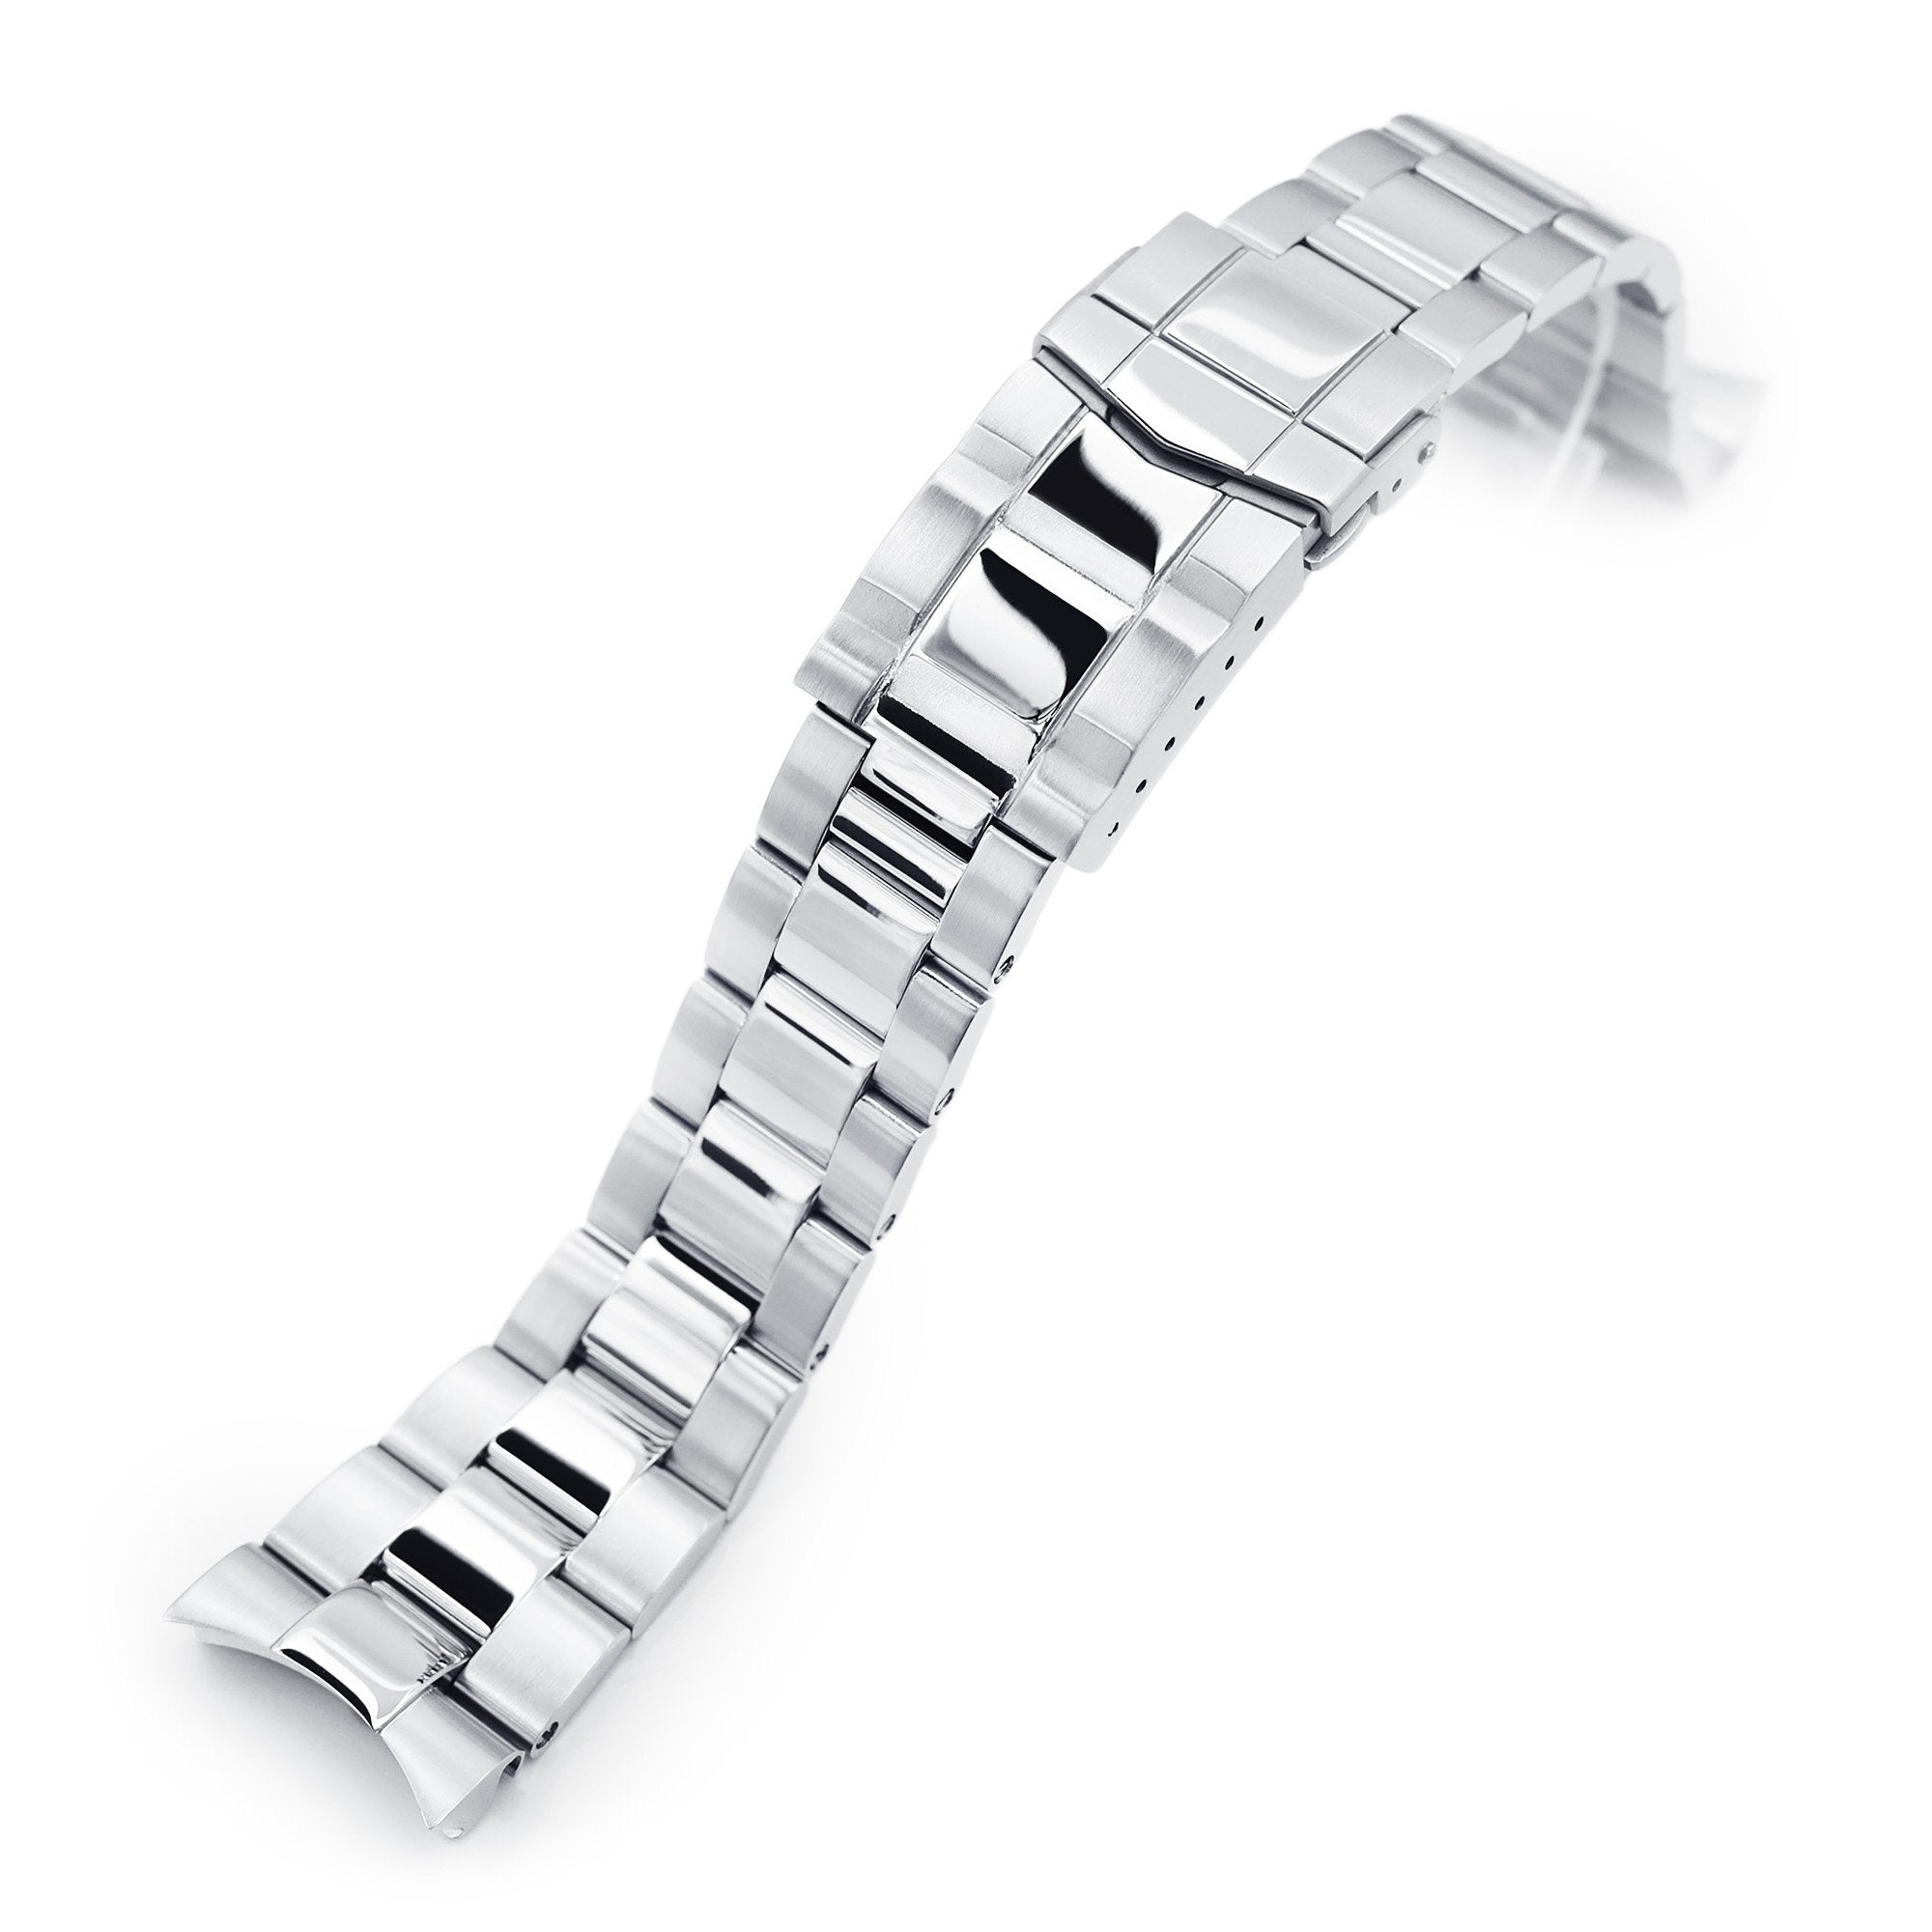 22mm Super-O Boyer 316L Stainless Steel Watch Bracelet for Orient Kamasu Brushed with Polished Center SUB Clasp Strapcode Watch Bands